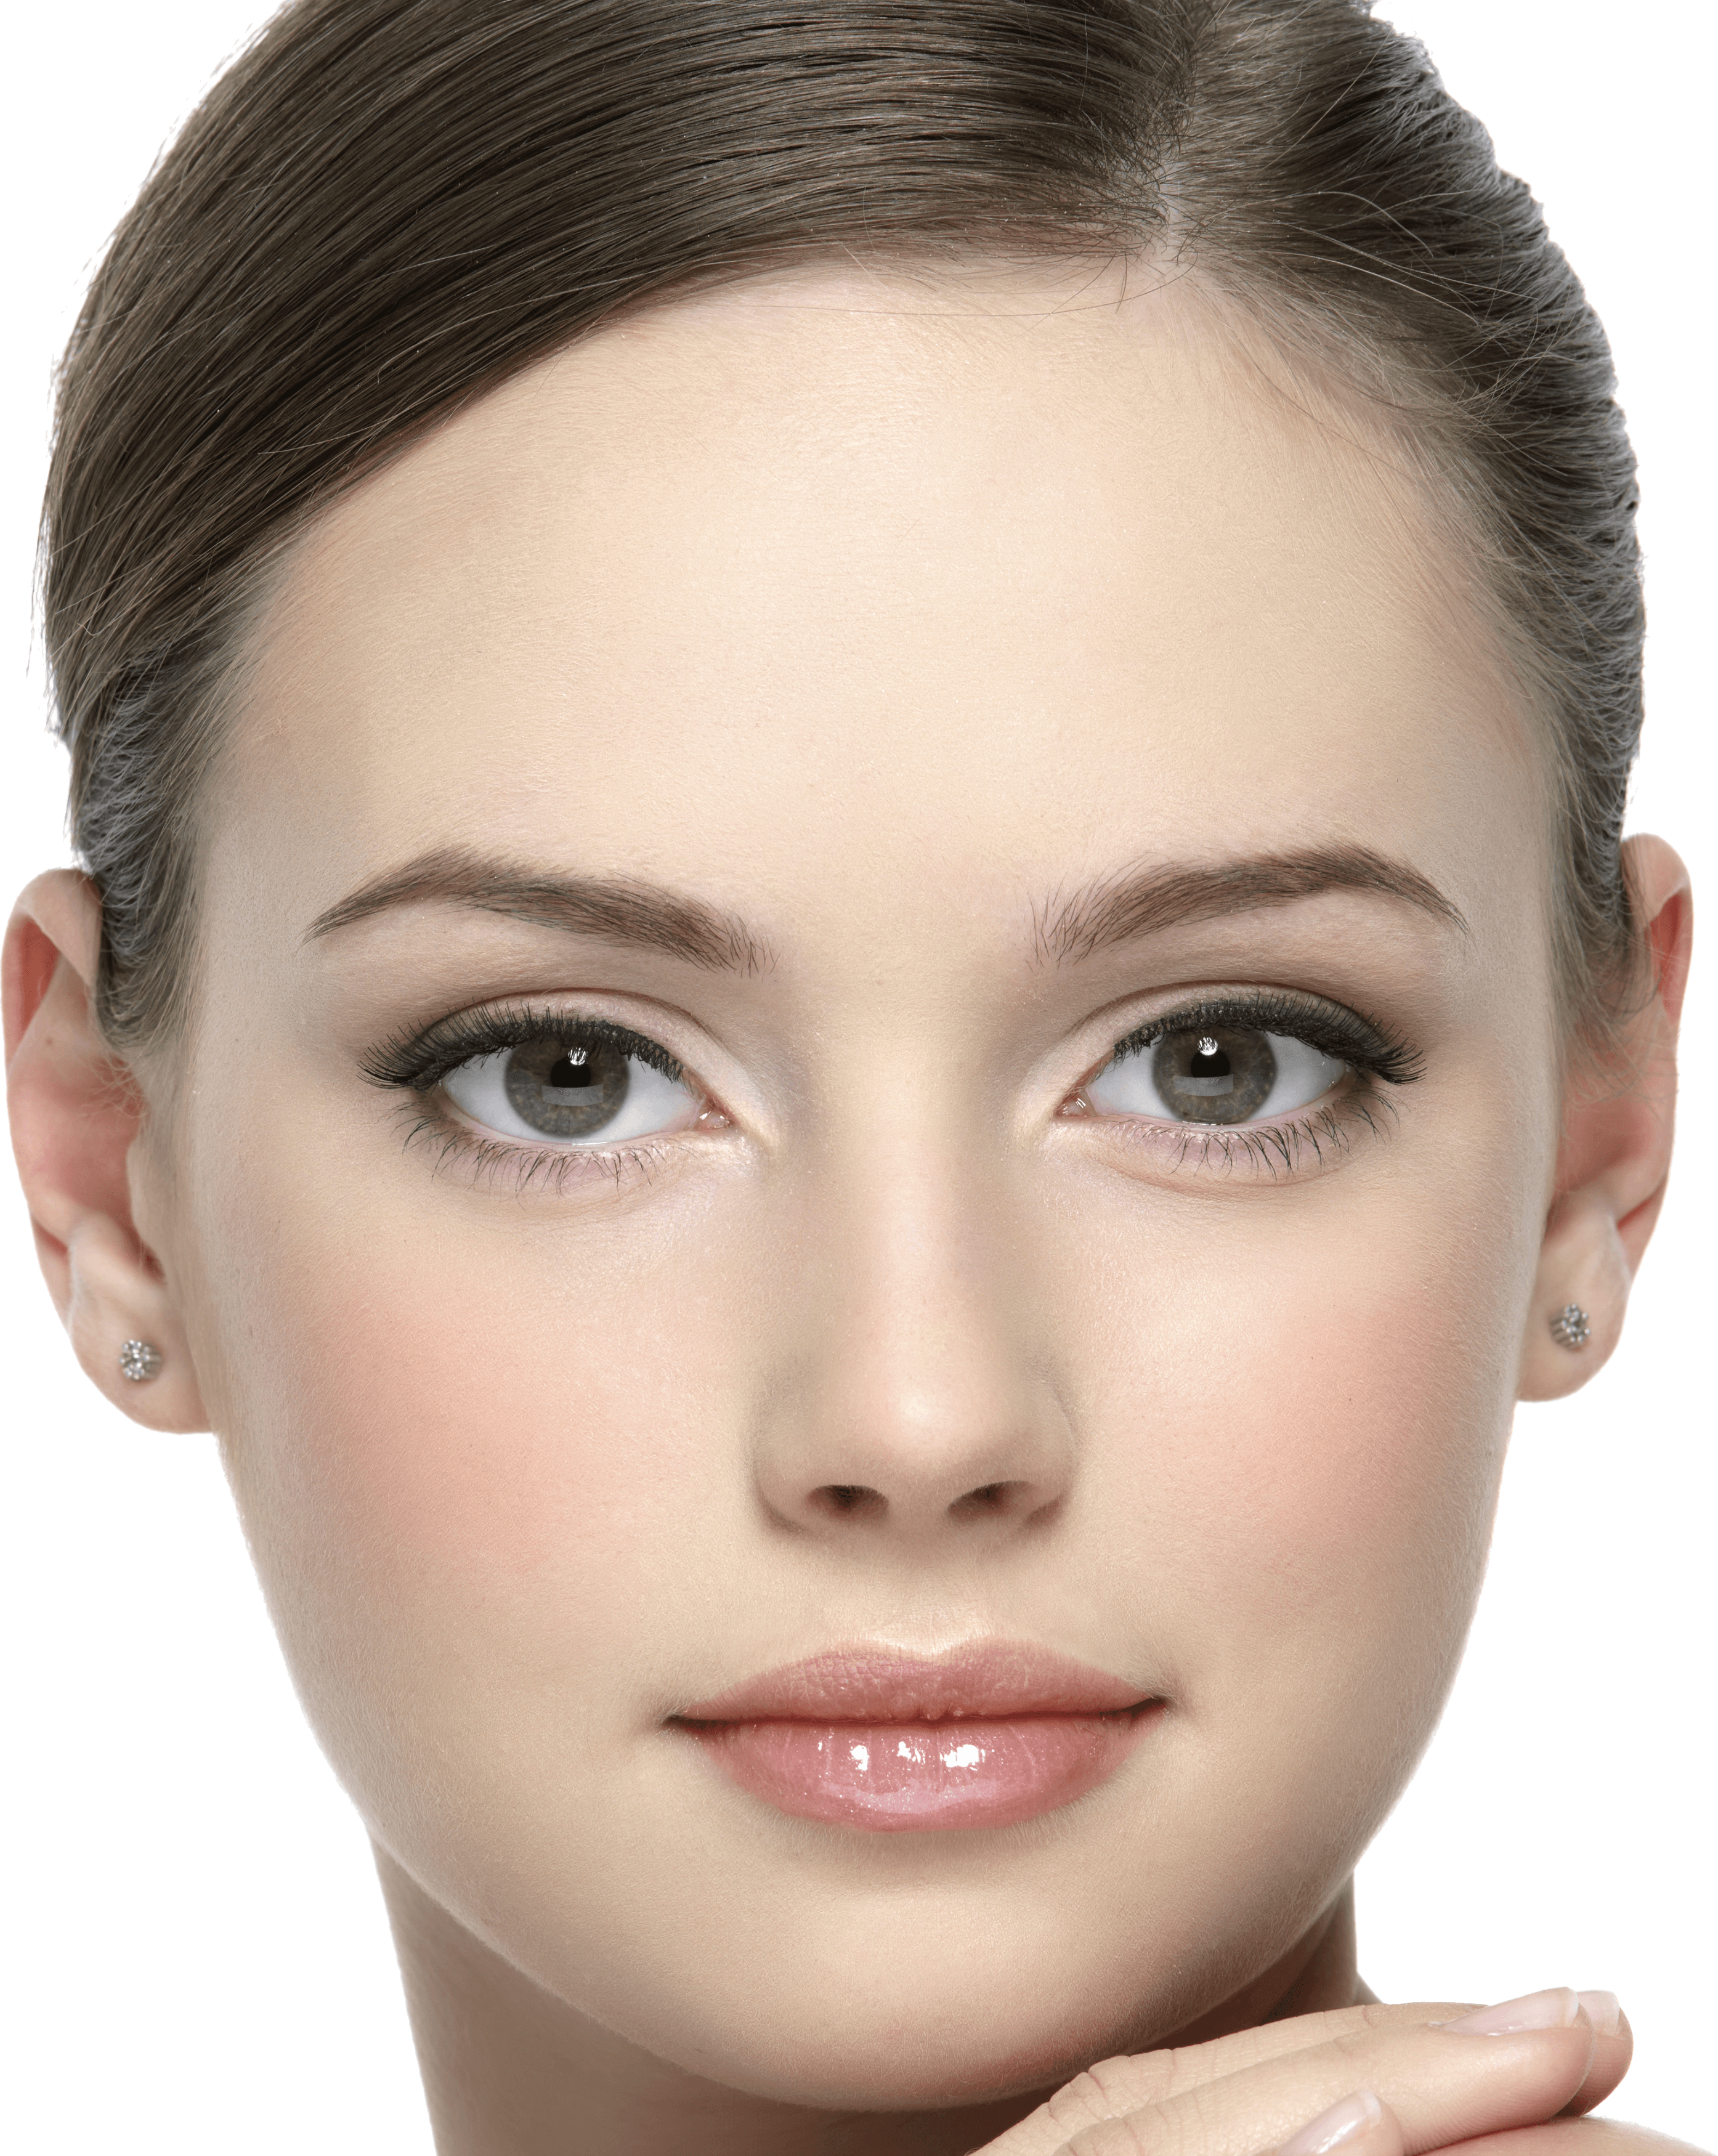 Woman Face Png Image PNG Image